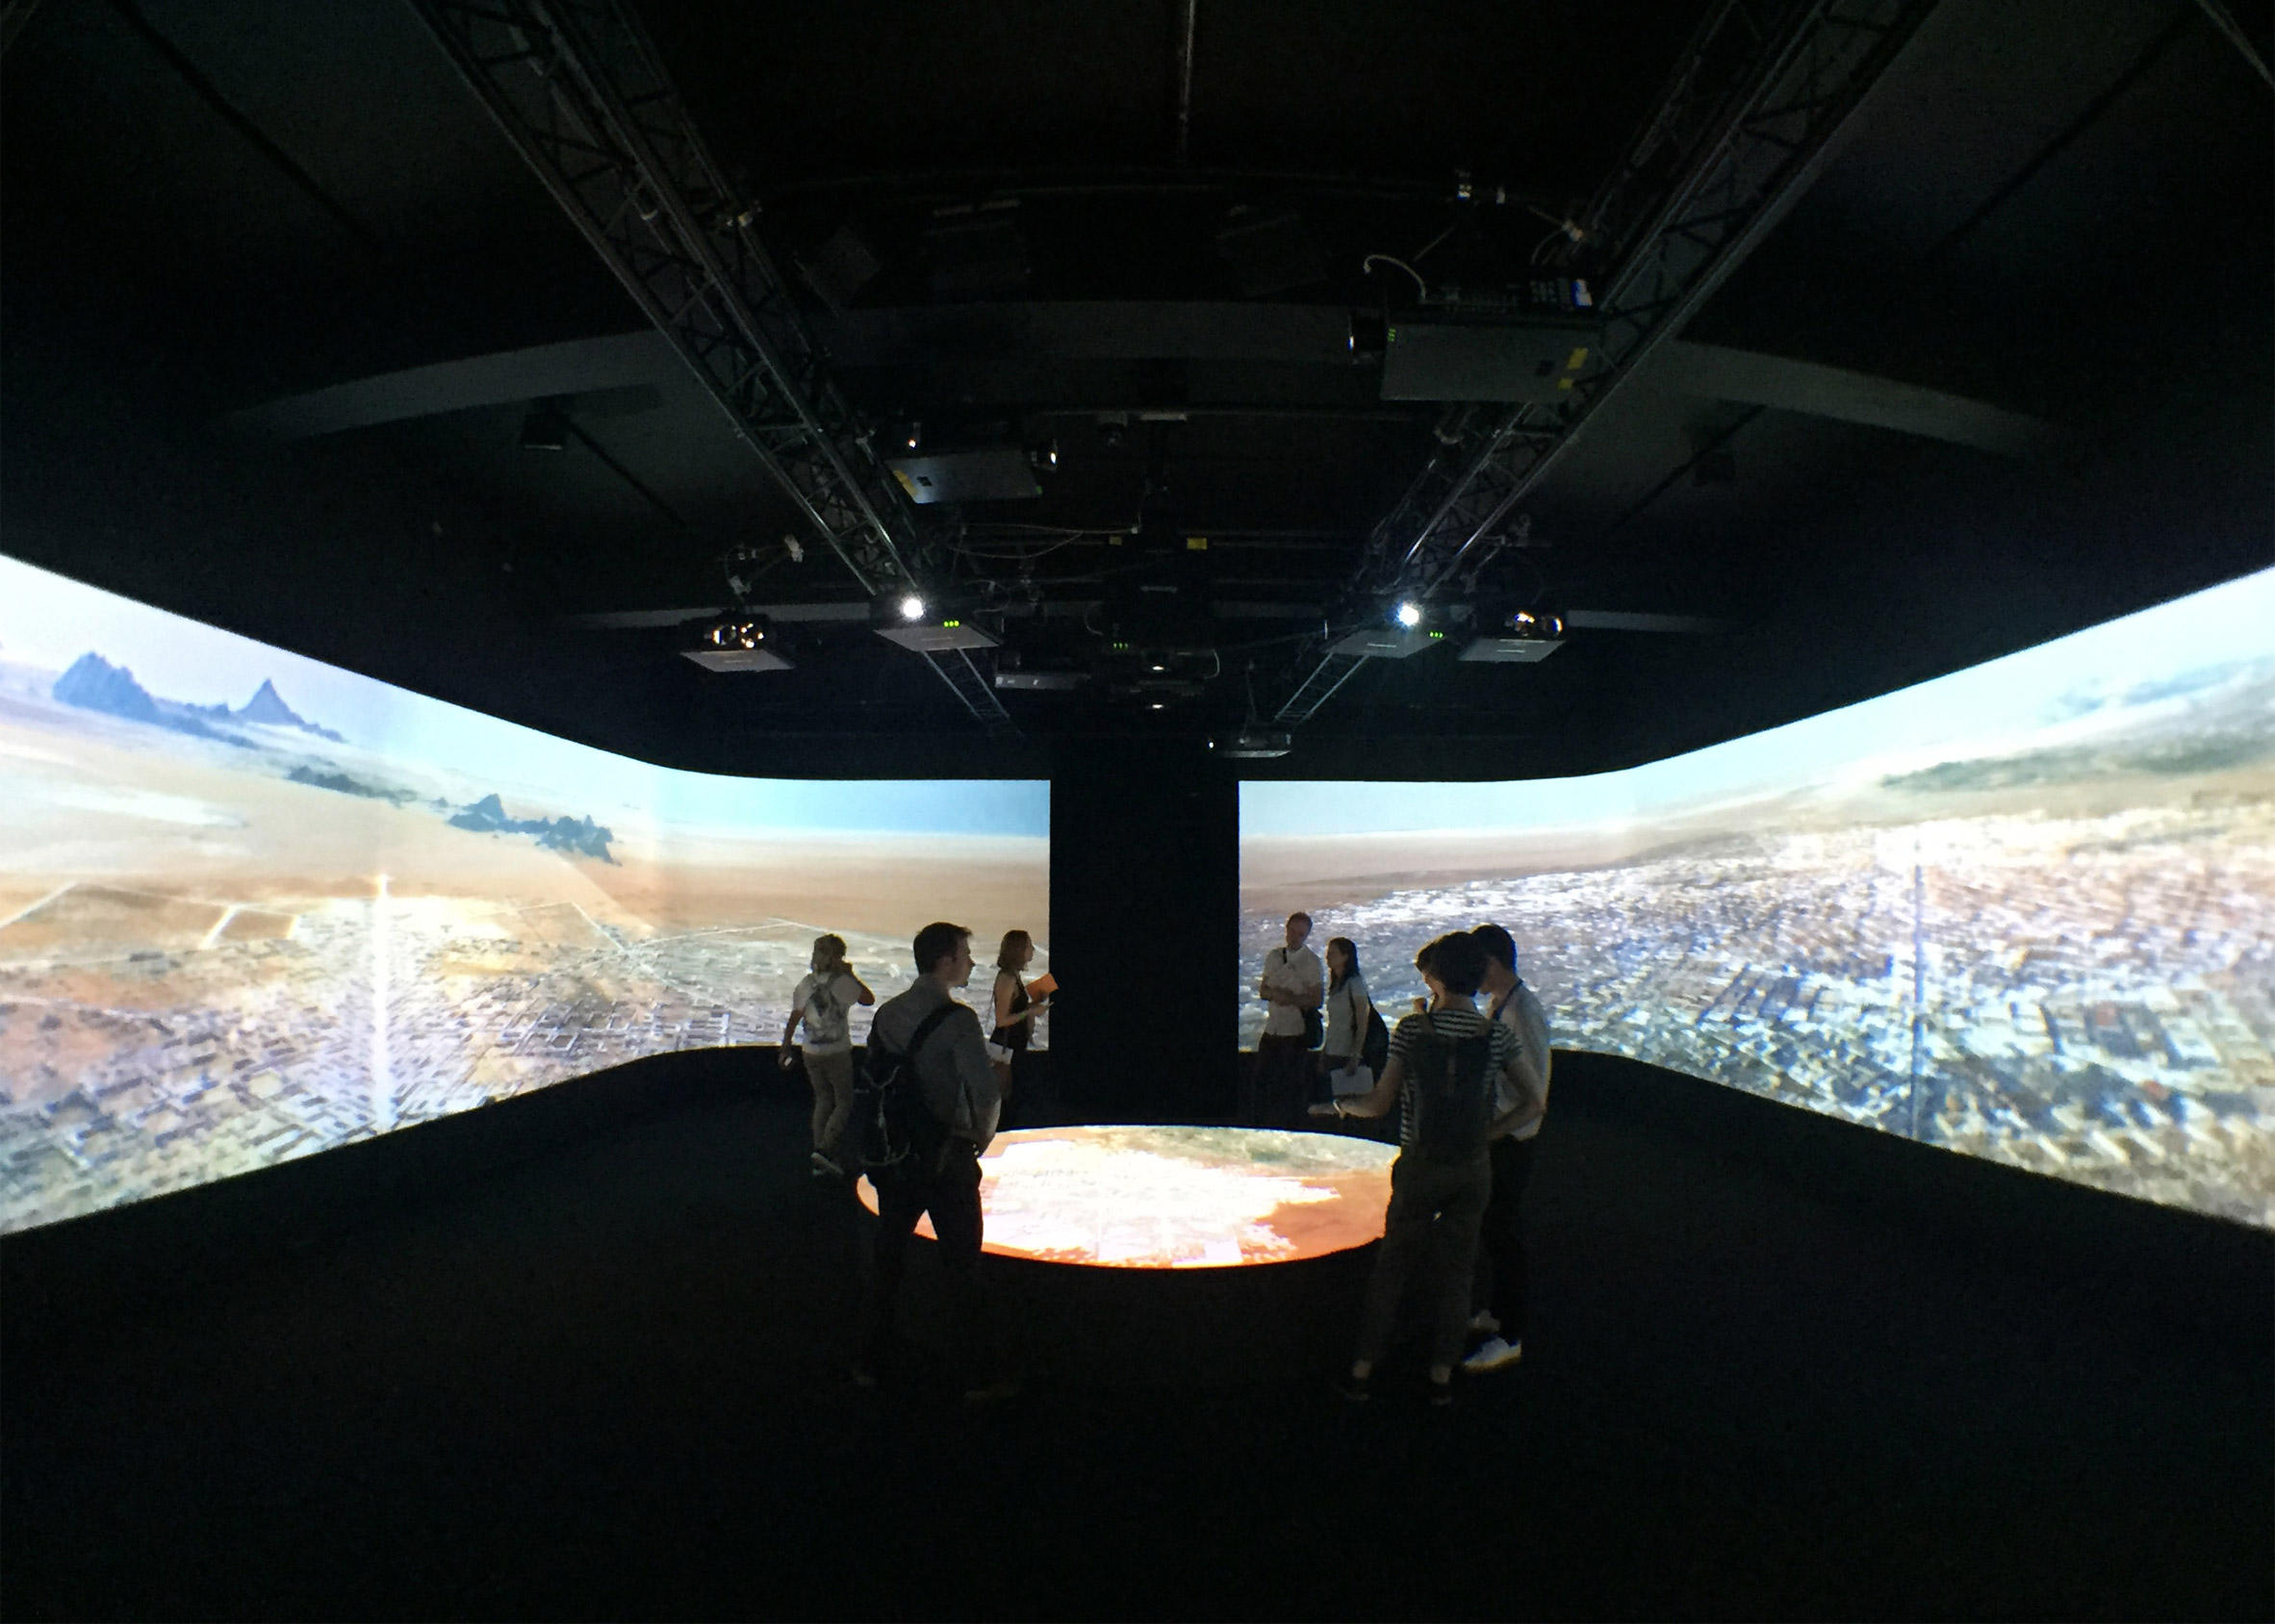 Biennale: Border City